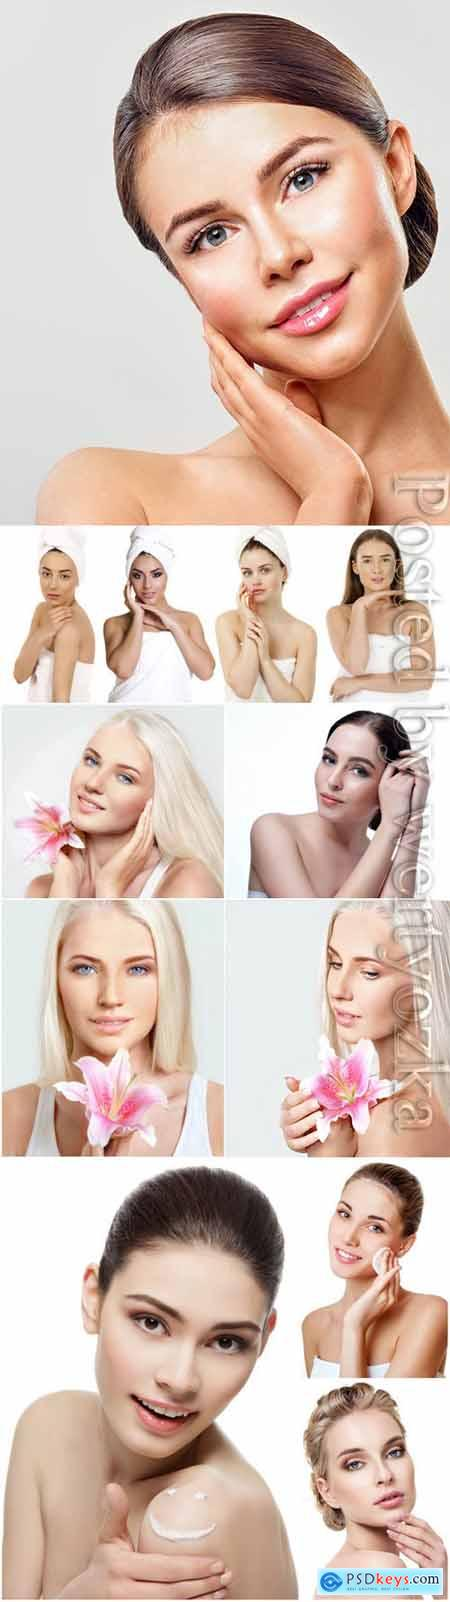 Healthy well-groomed skin of women face stock photo